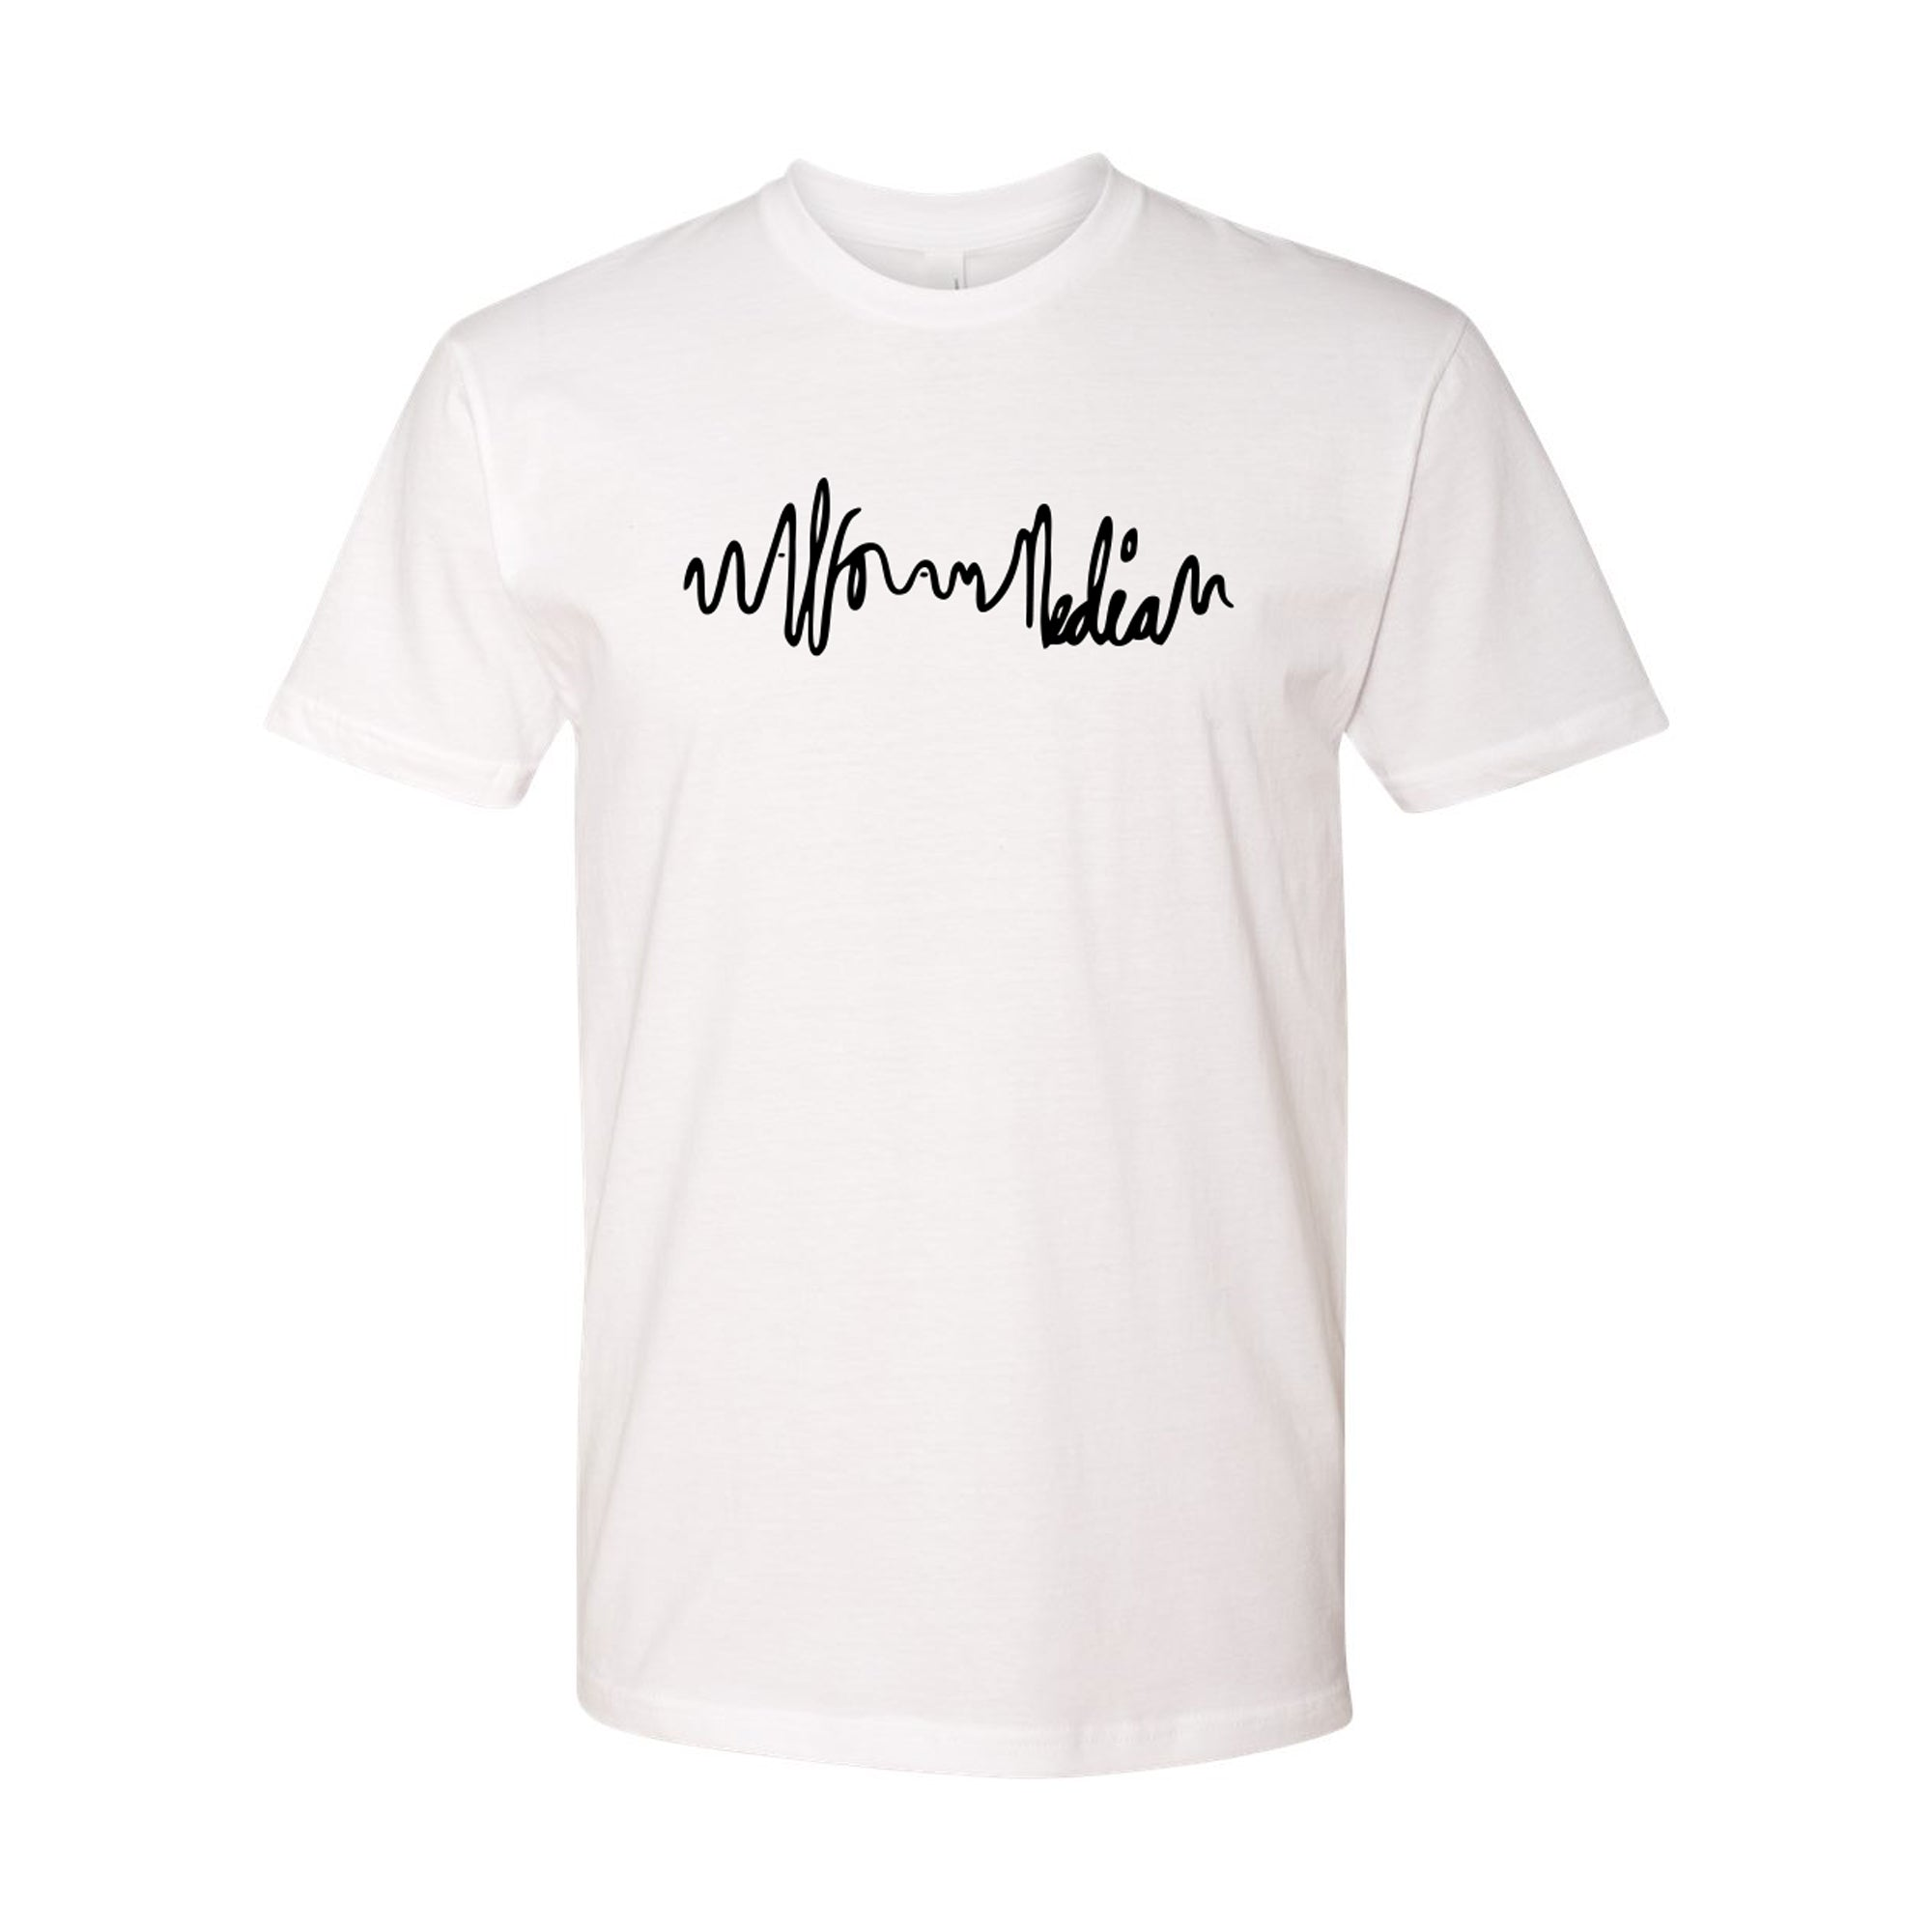 Logo Script T-shirt - Black on White